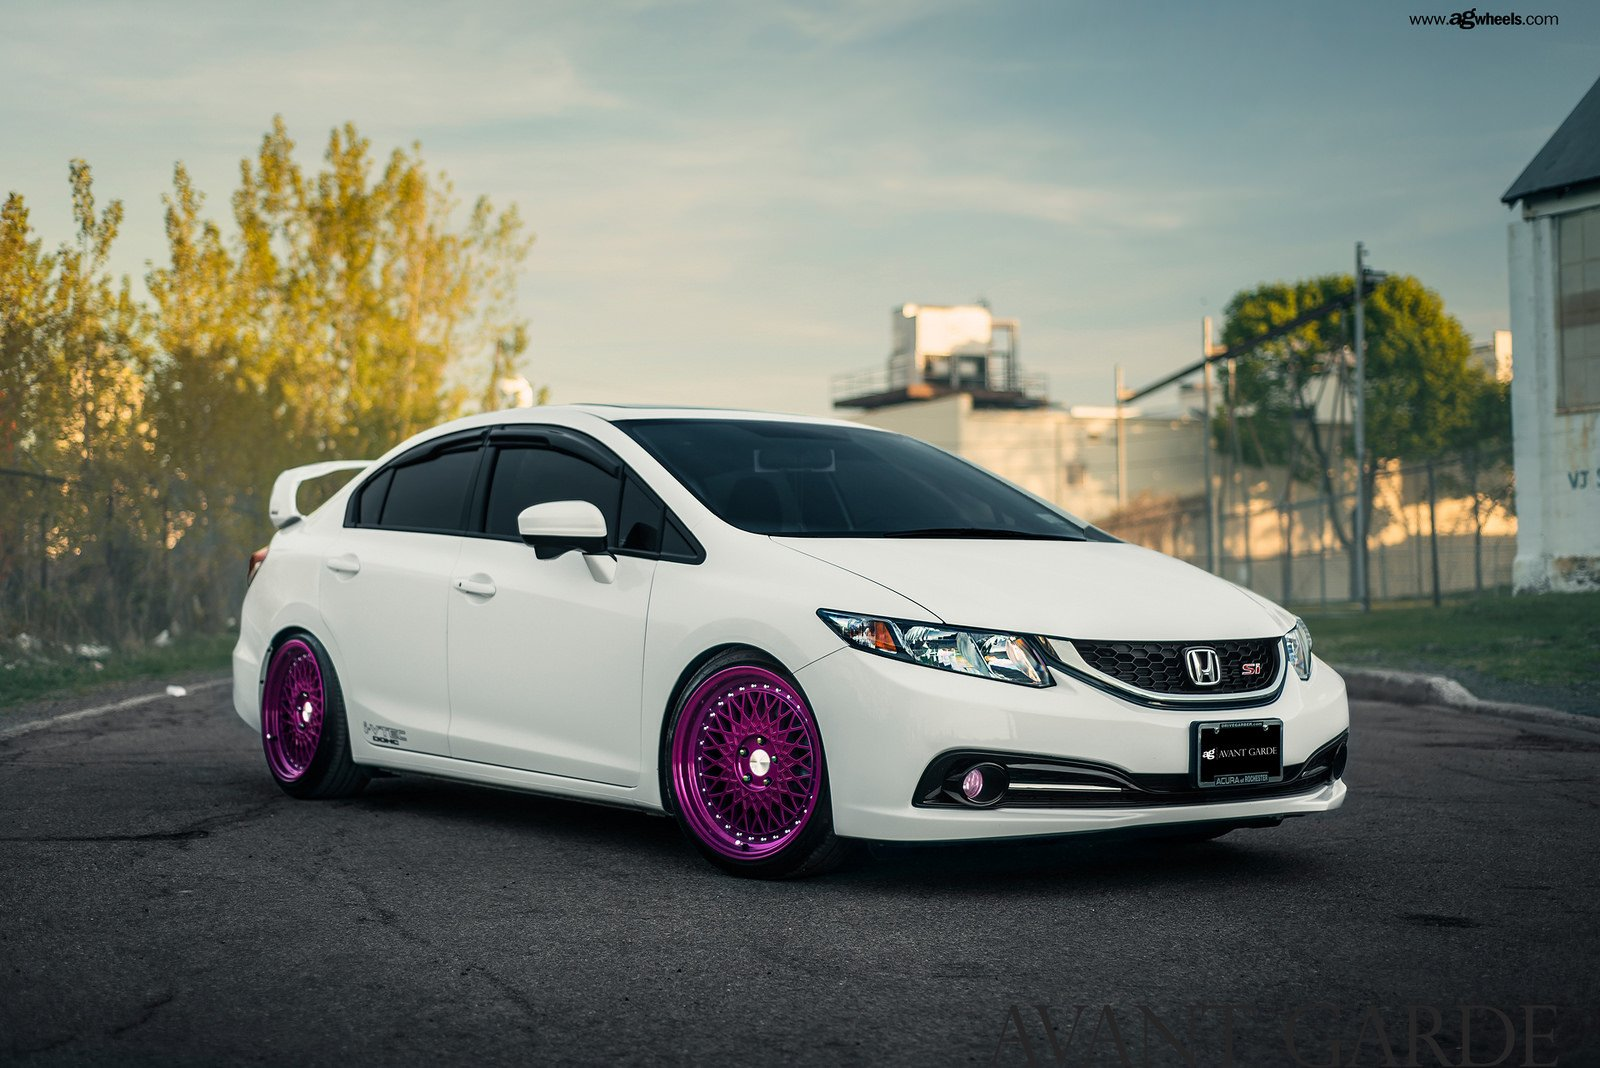 honda civic si white cars modified wallpaper 1600x1068. Black Bedroom Furniture Sets. Home Design Ideas